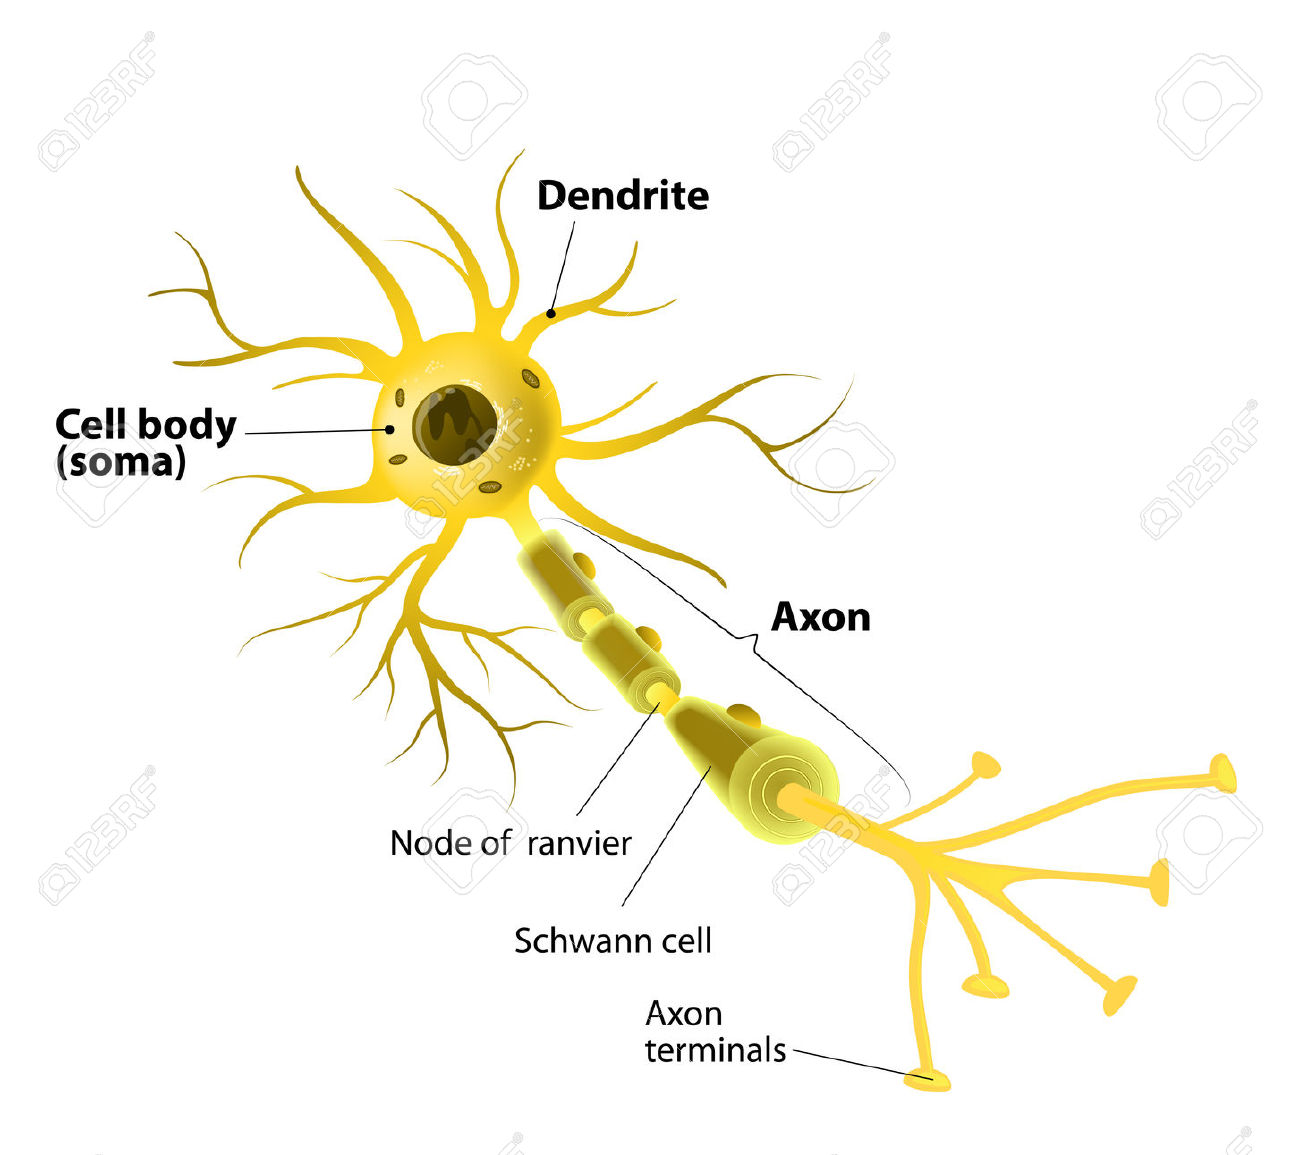 Neuron And Synapse Labeled Diagram Royalty Free Cliparts, Vectors.